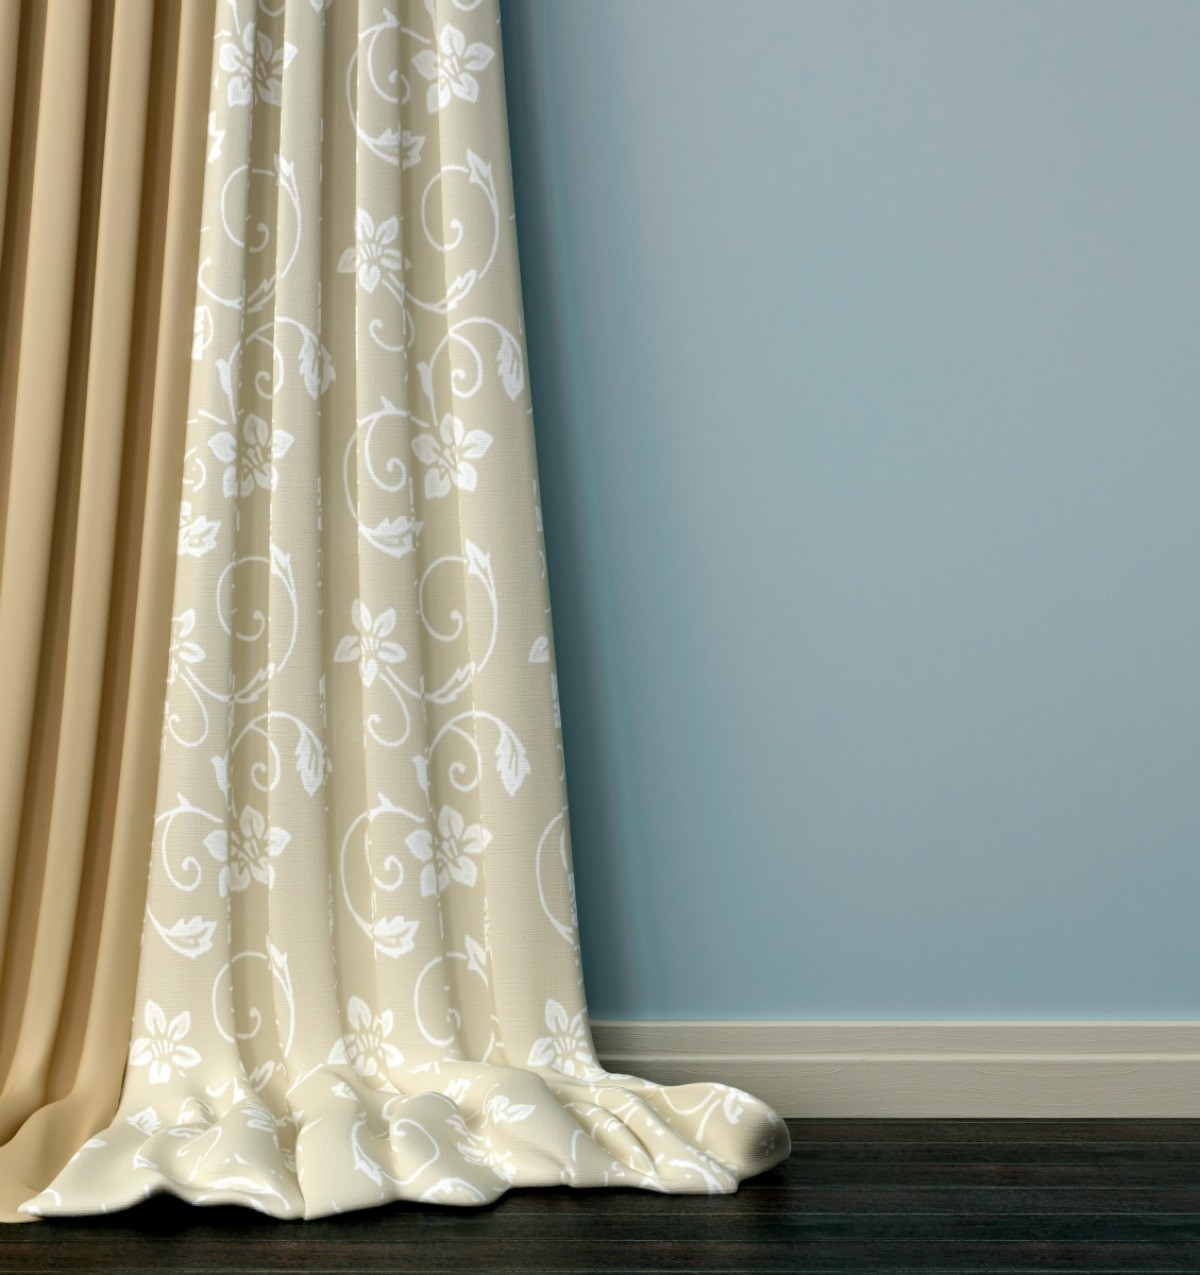 Removing Mold and Mildew From Curtains   ThriftyFun